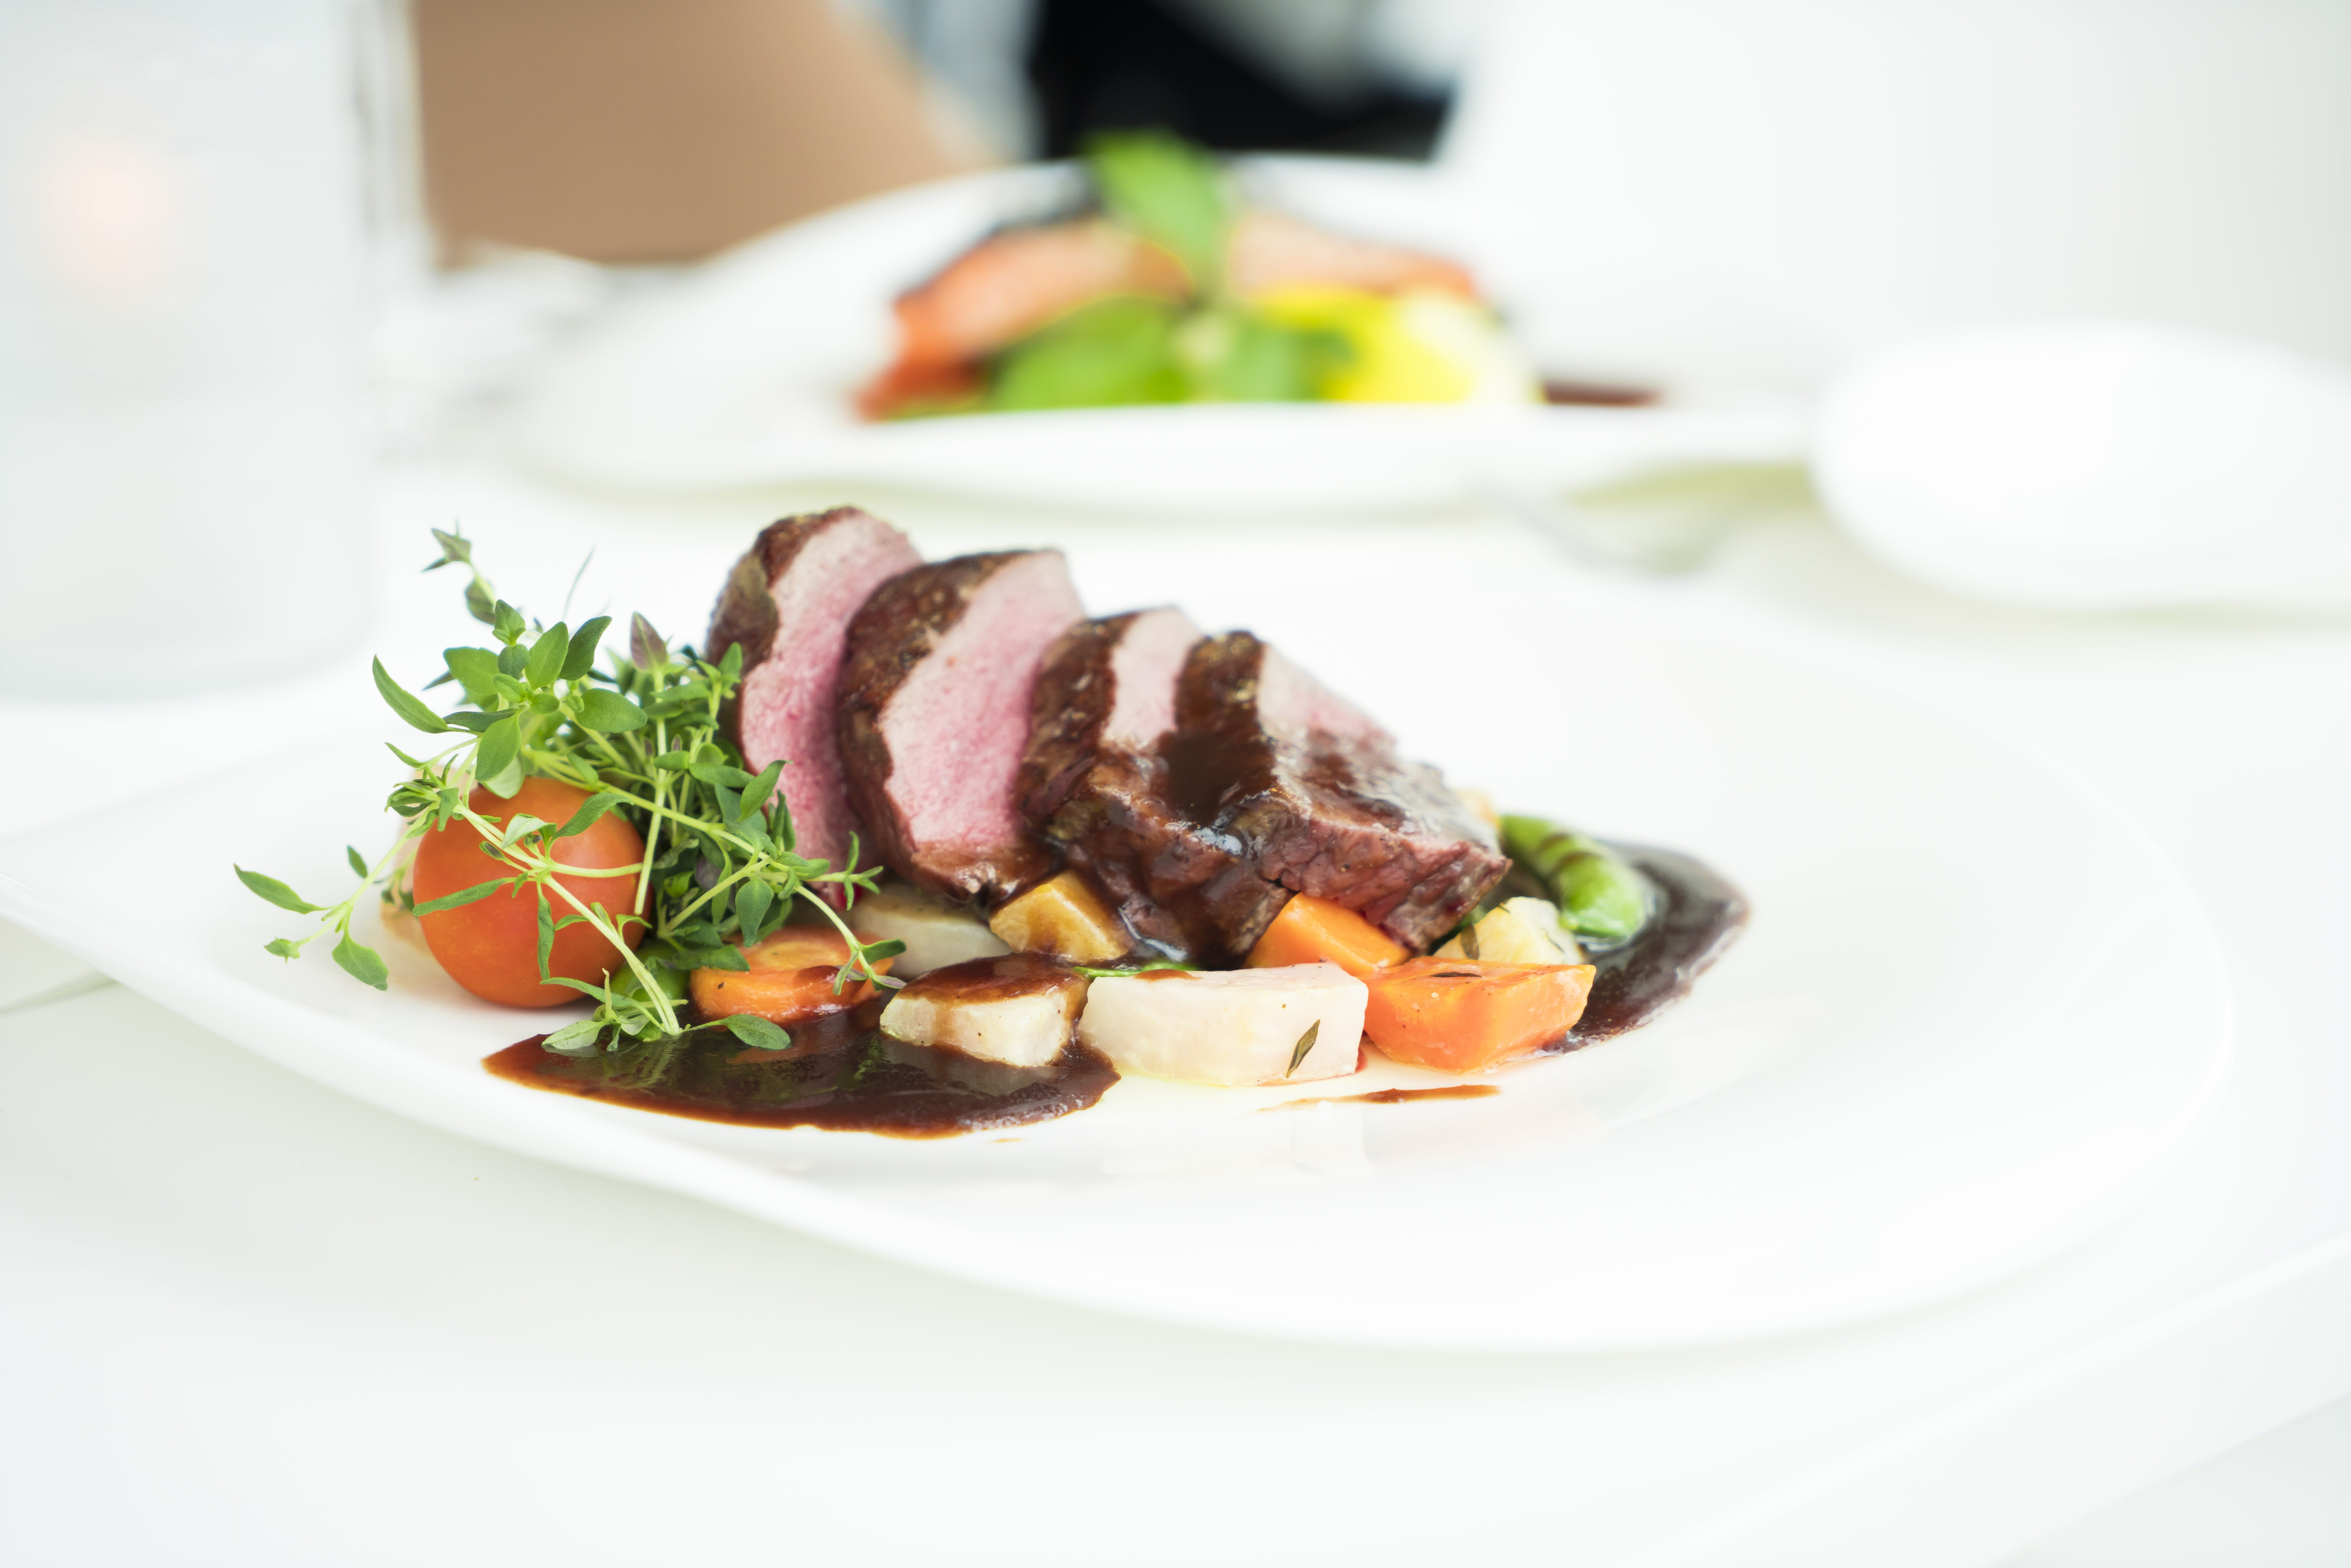 Well-done Beef Steak and Vegetables on Plate